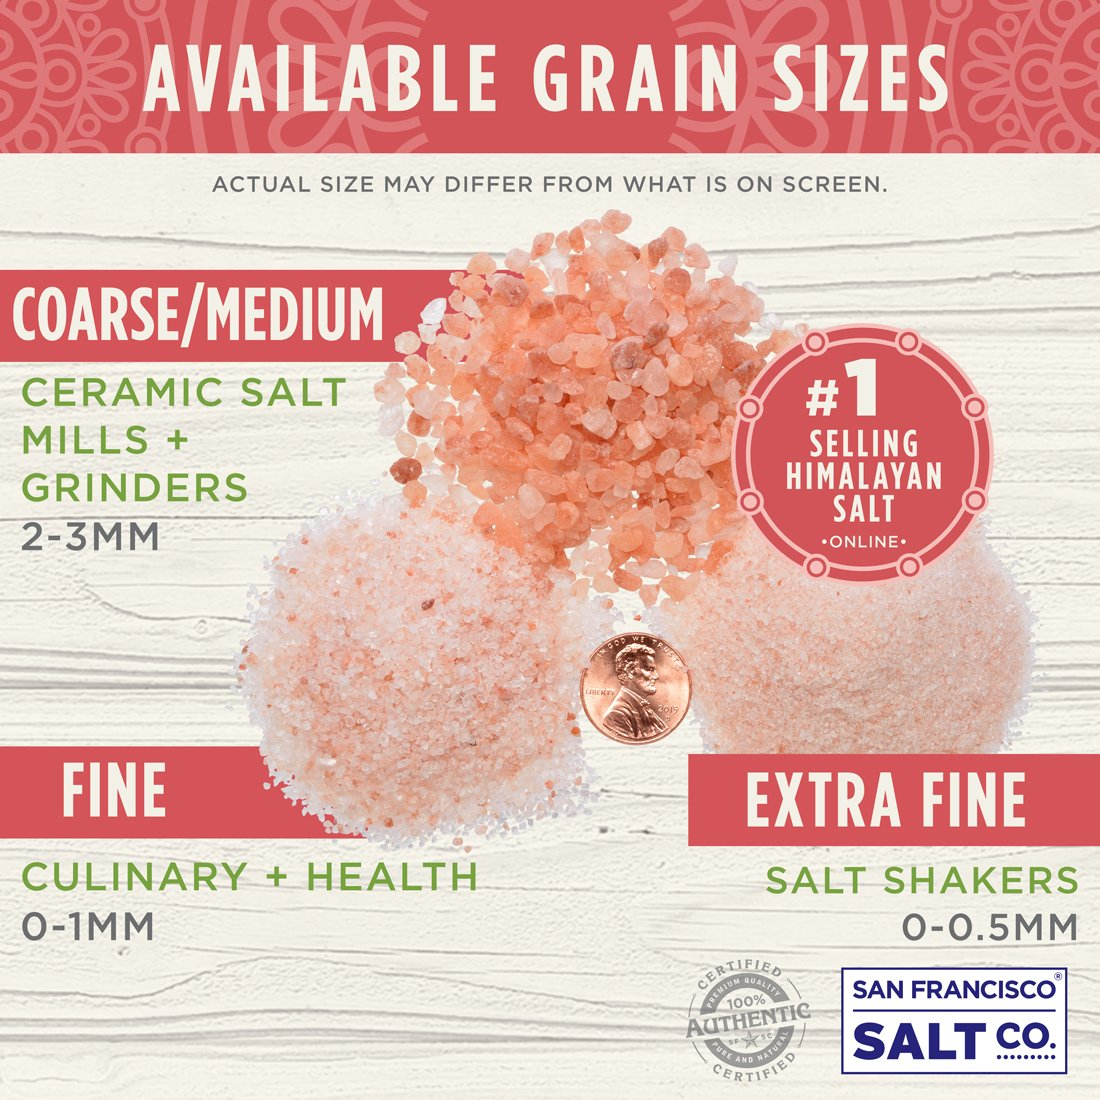 Sherpa Pink Gourmet Himalayan Salt, 2 lbs. Fine Grain. Incredible Taste. Rich in Nutrients and Minerals To Improve Your Health. Add To Your Cart Today. by Sherpa Pink (Image #1)